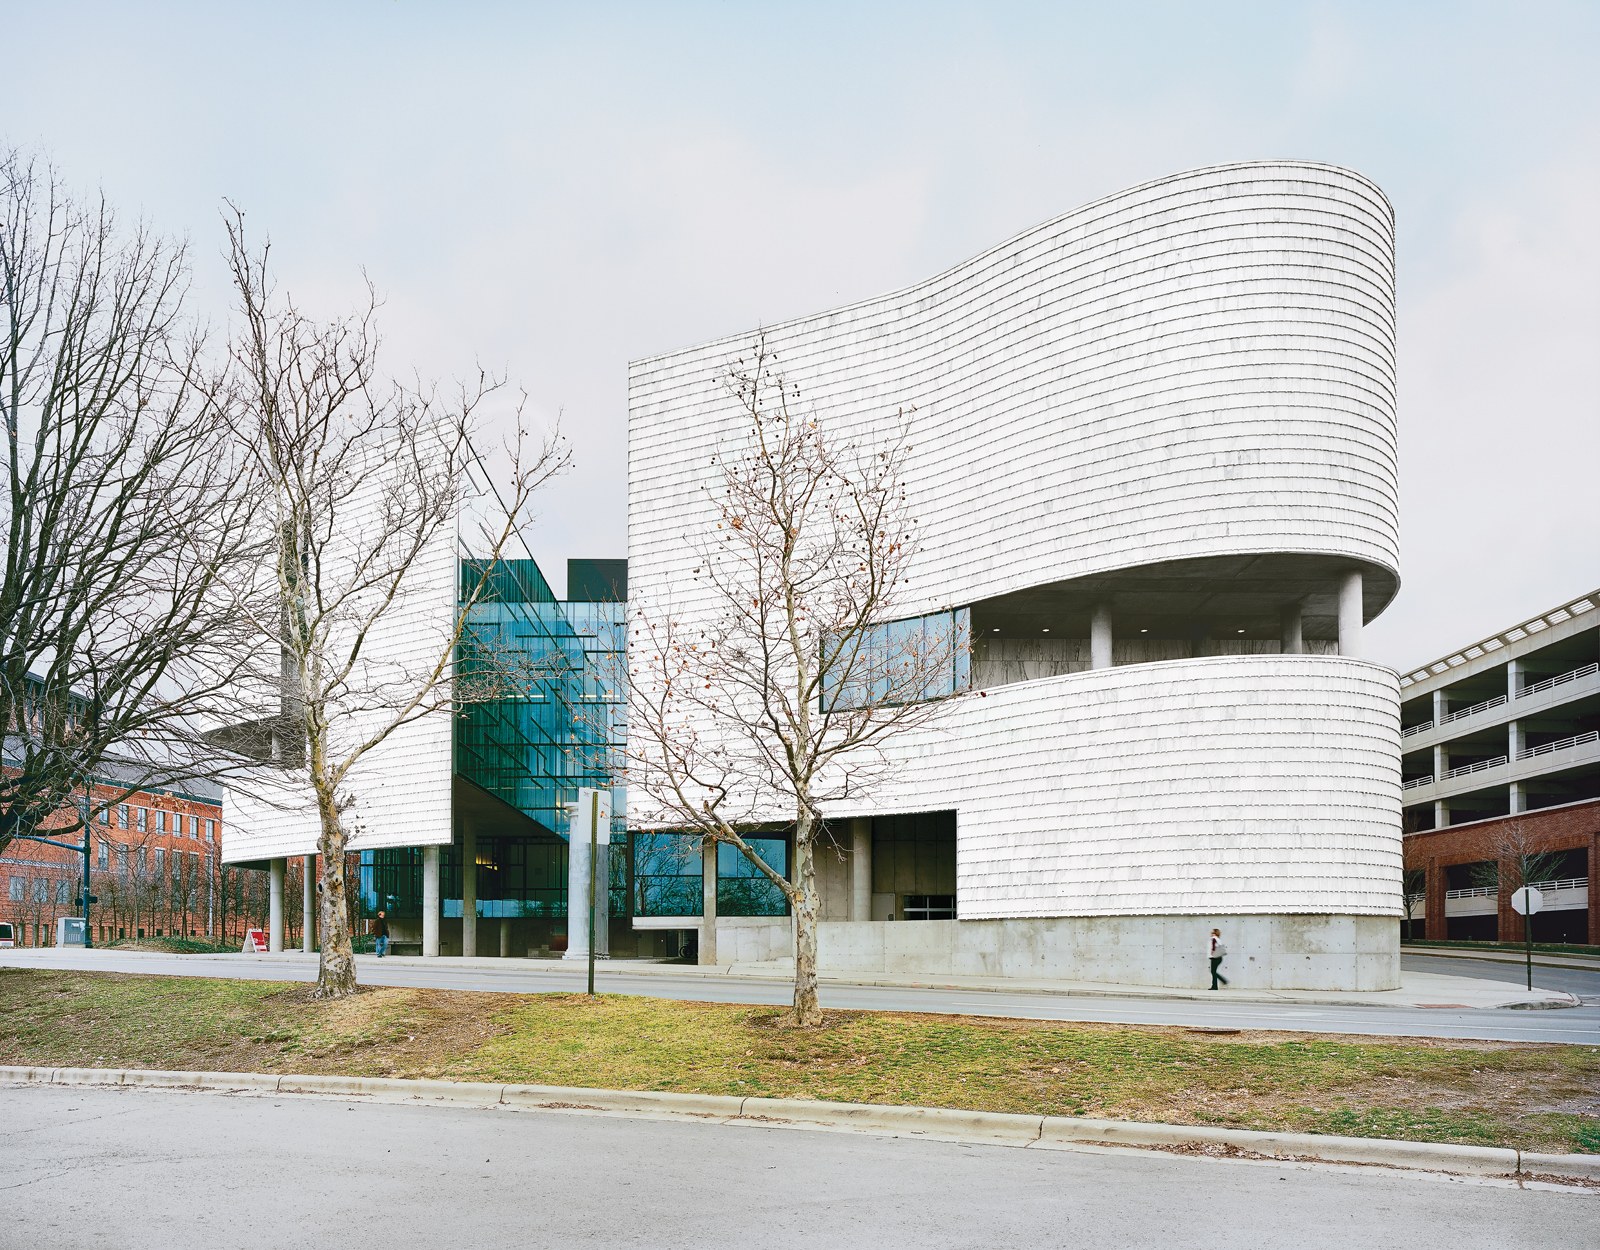 Austin E. Knowlton School of Architecture 's Knowlton Hall at The Ohio State University